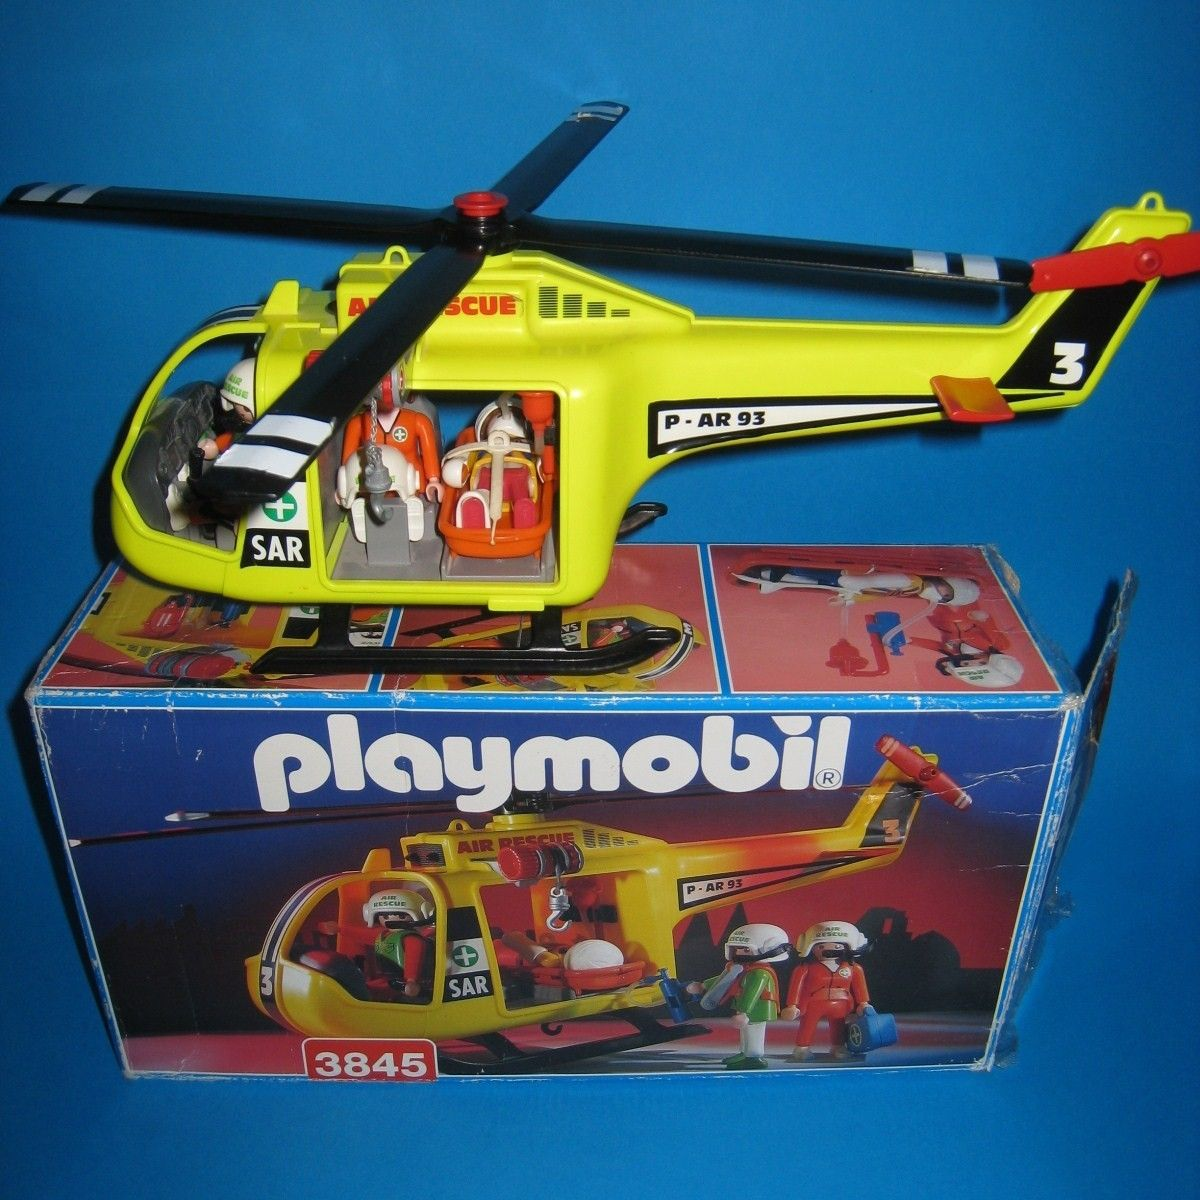 exceptionnel coiffeuse meuble pas cher occasion 11 helicoptere playmobil